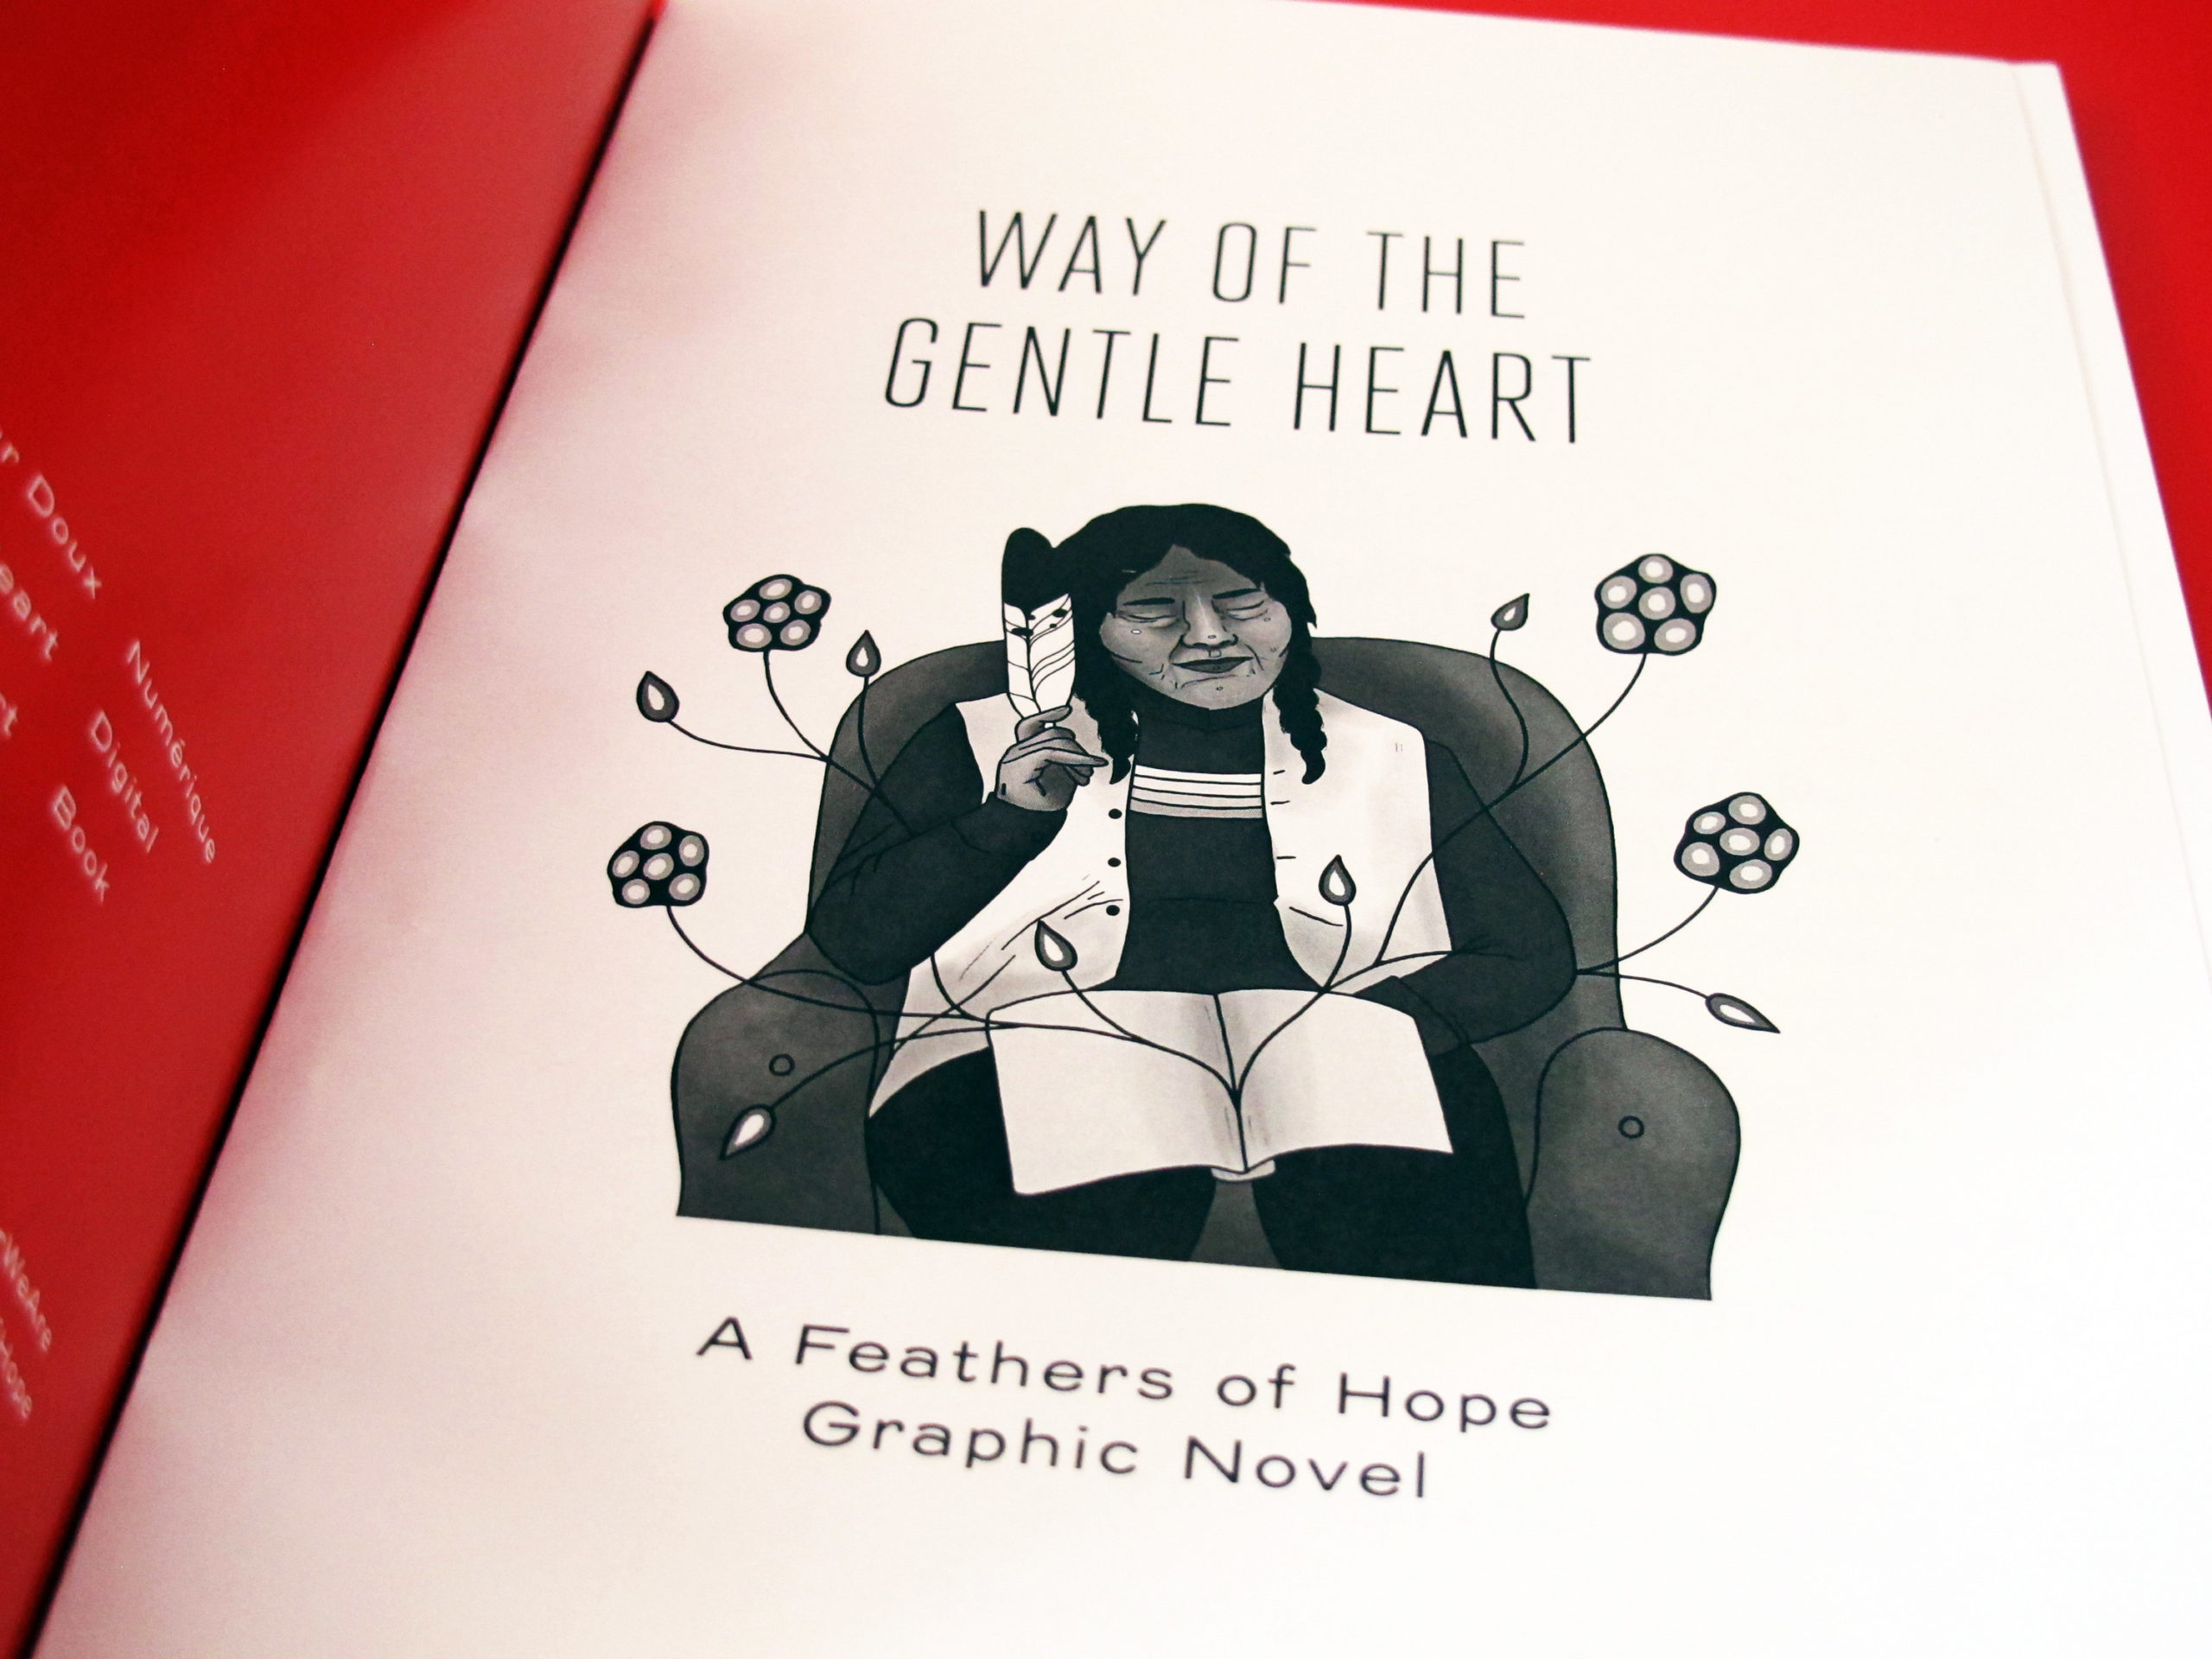 Photo of the opening page to the graphic novel Way of the Gentle Heart. It is a black and white illustration of an Elder sitting on a couch, holding a feather. Their eyes are closed, and their expression is one of complete peace and tranquility. There is an open notebook in the Elder's lap—from its pages are blossoming a series of undulating flowers.